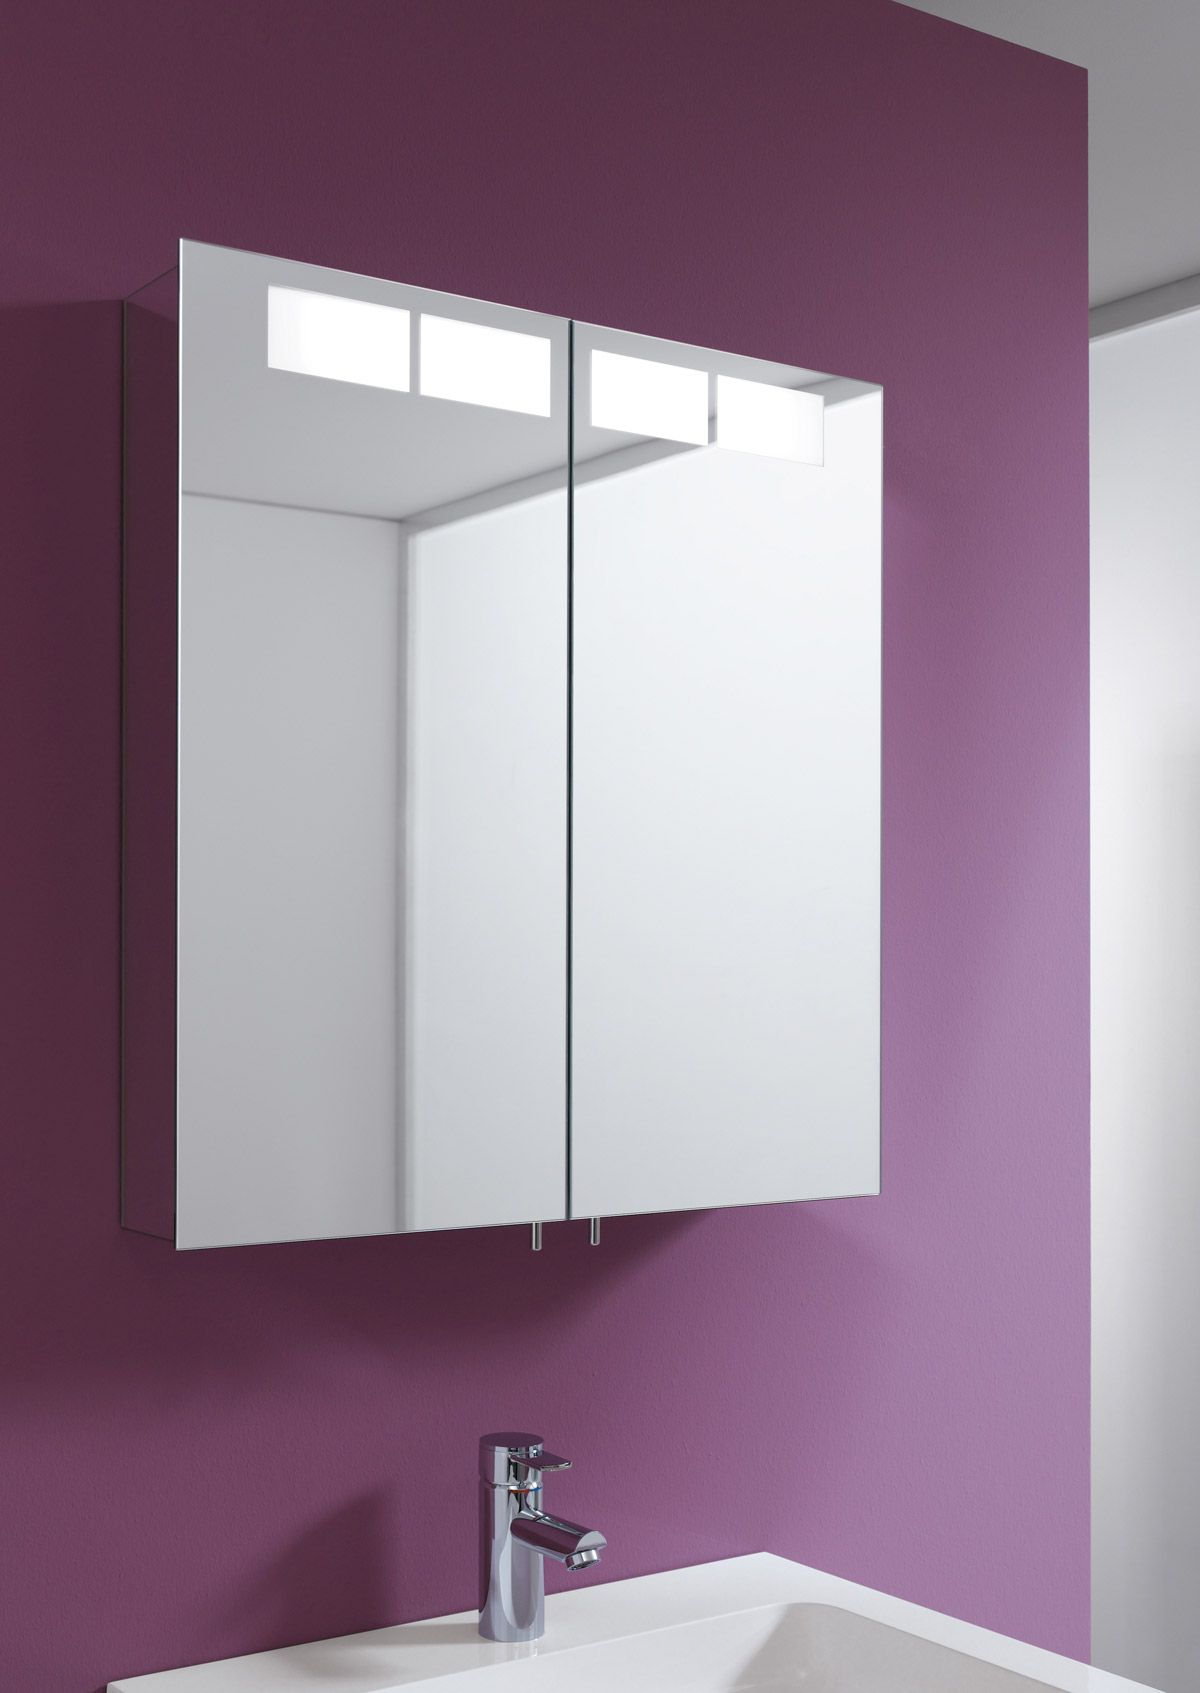 keuco royal t1 2 door mirror cabinet - Bathroom Cabinets Keuco